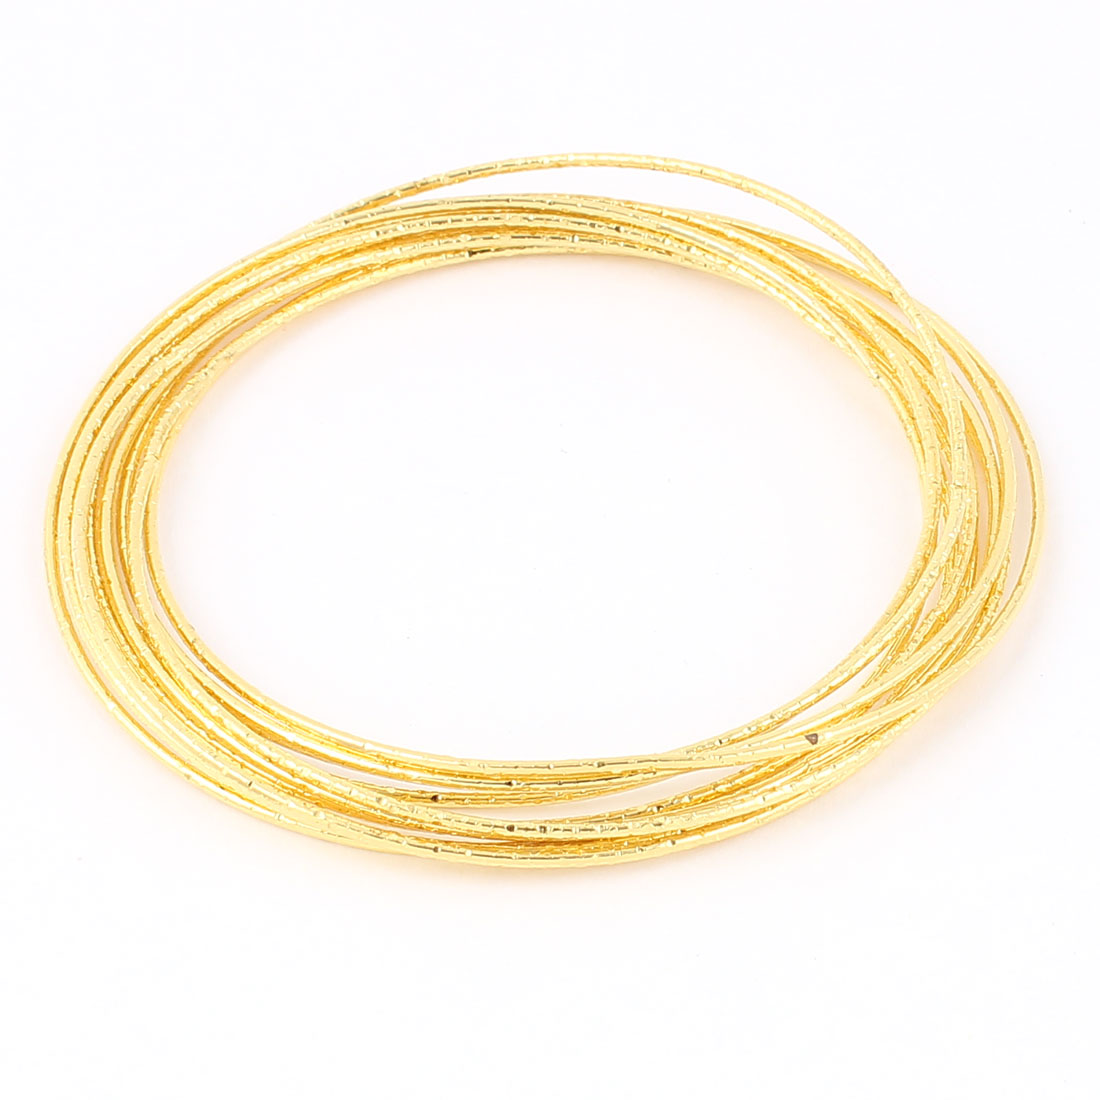 Woman Gold Tone Metal Interlock Loop Wrist Ornament Jewelry Bracelet Wristlet Bangle 9 in 1